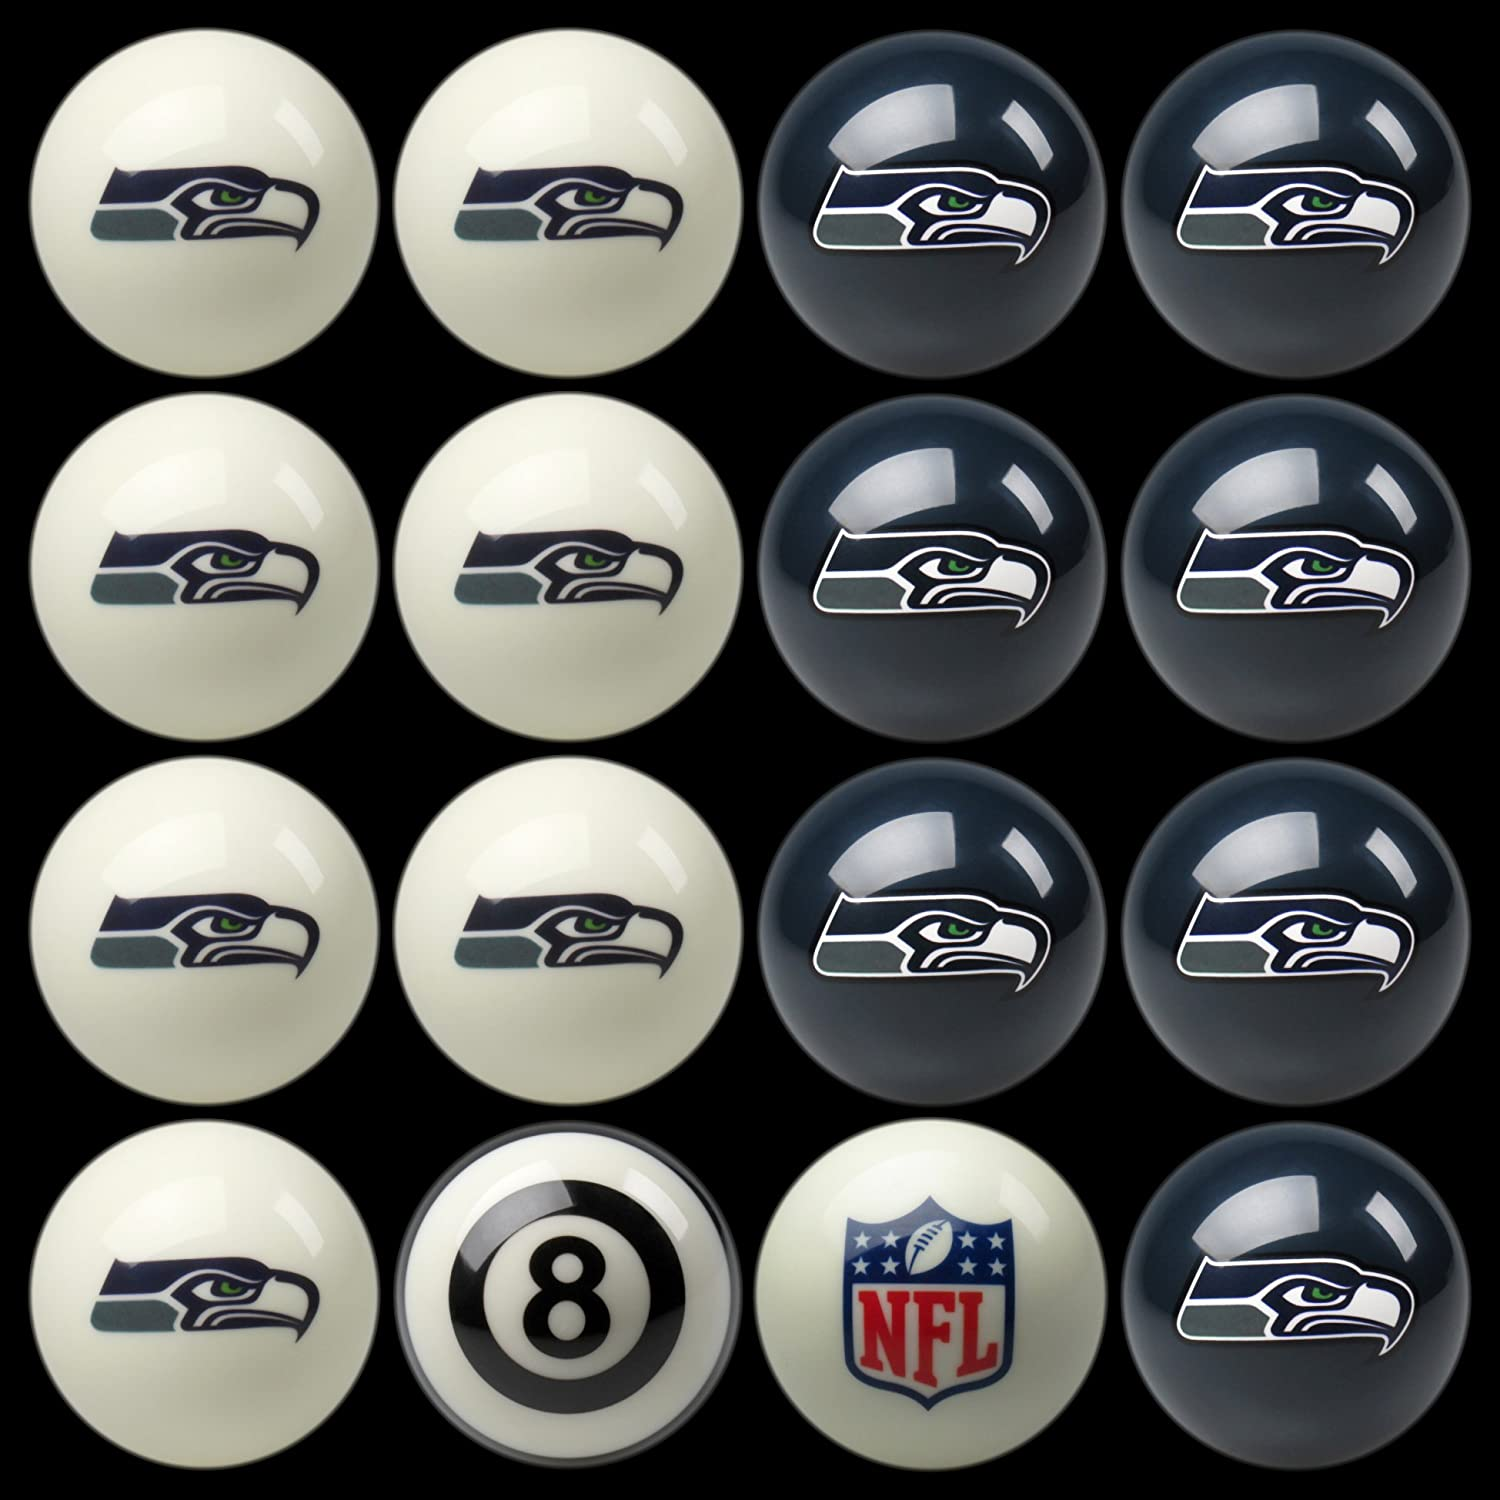 amazon com nfl seattle seahawks billiards ball set sports fan